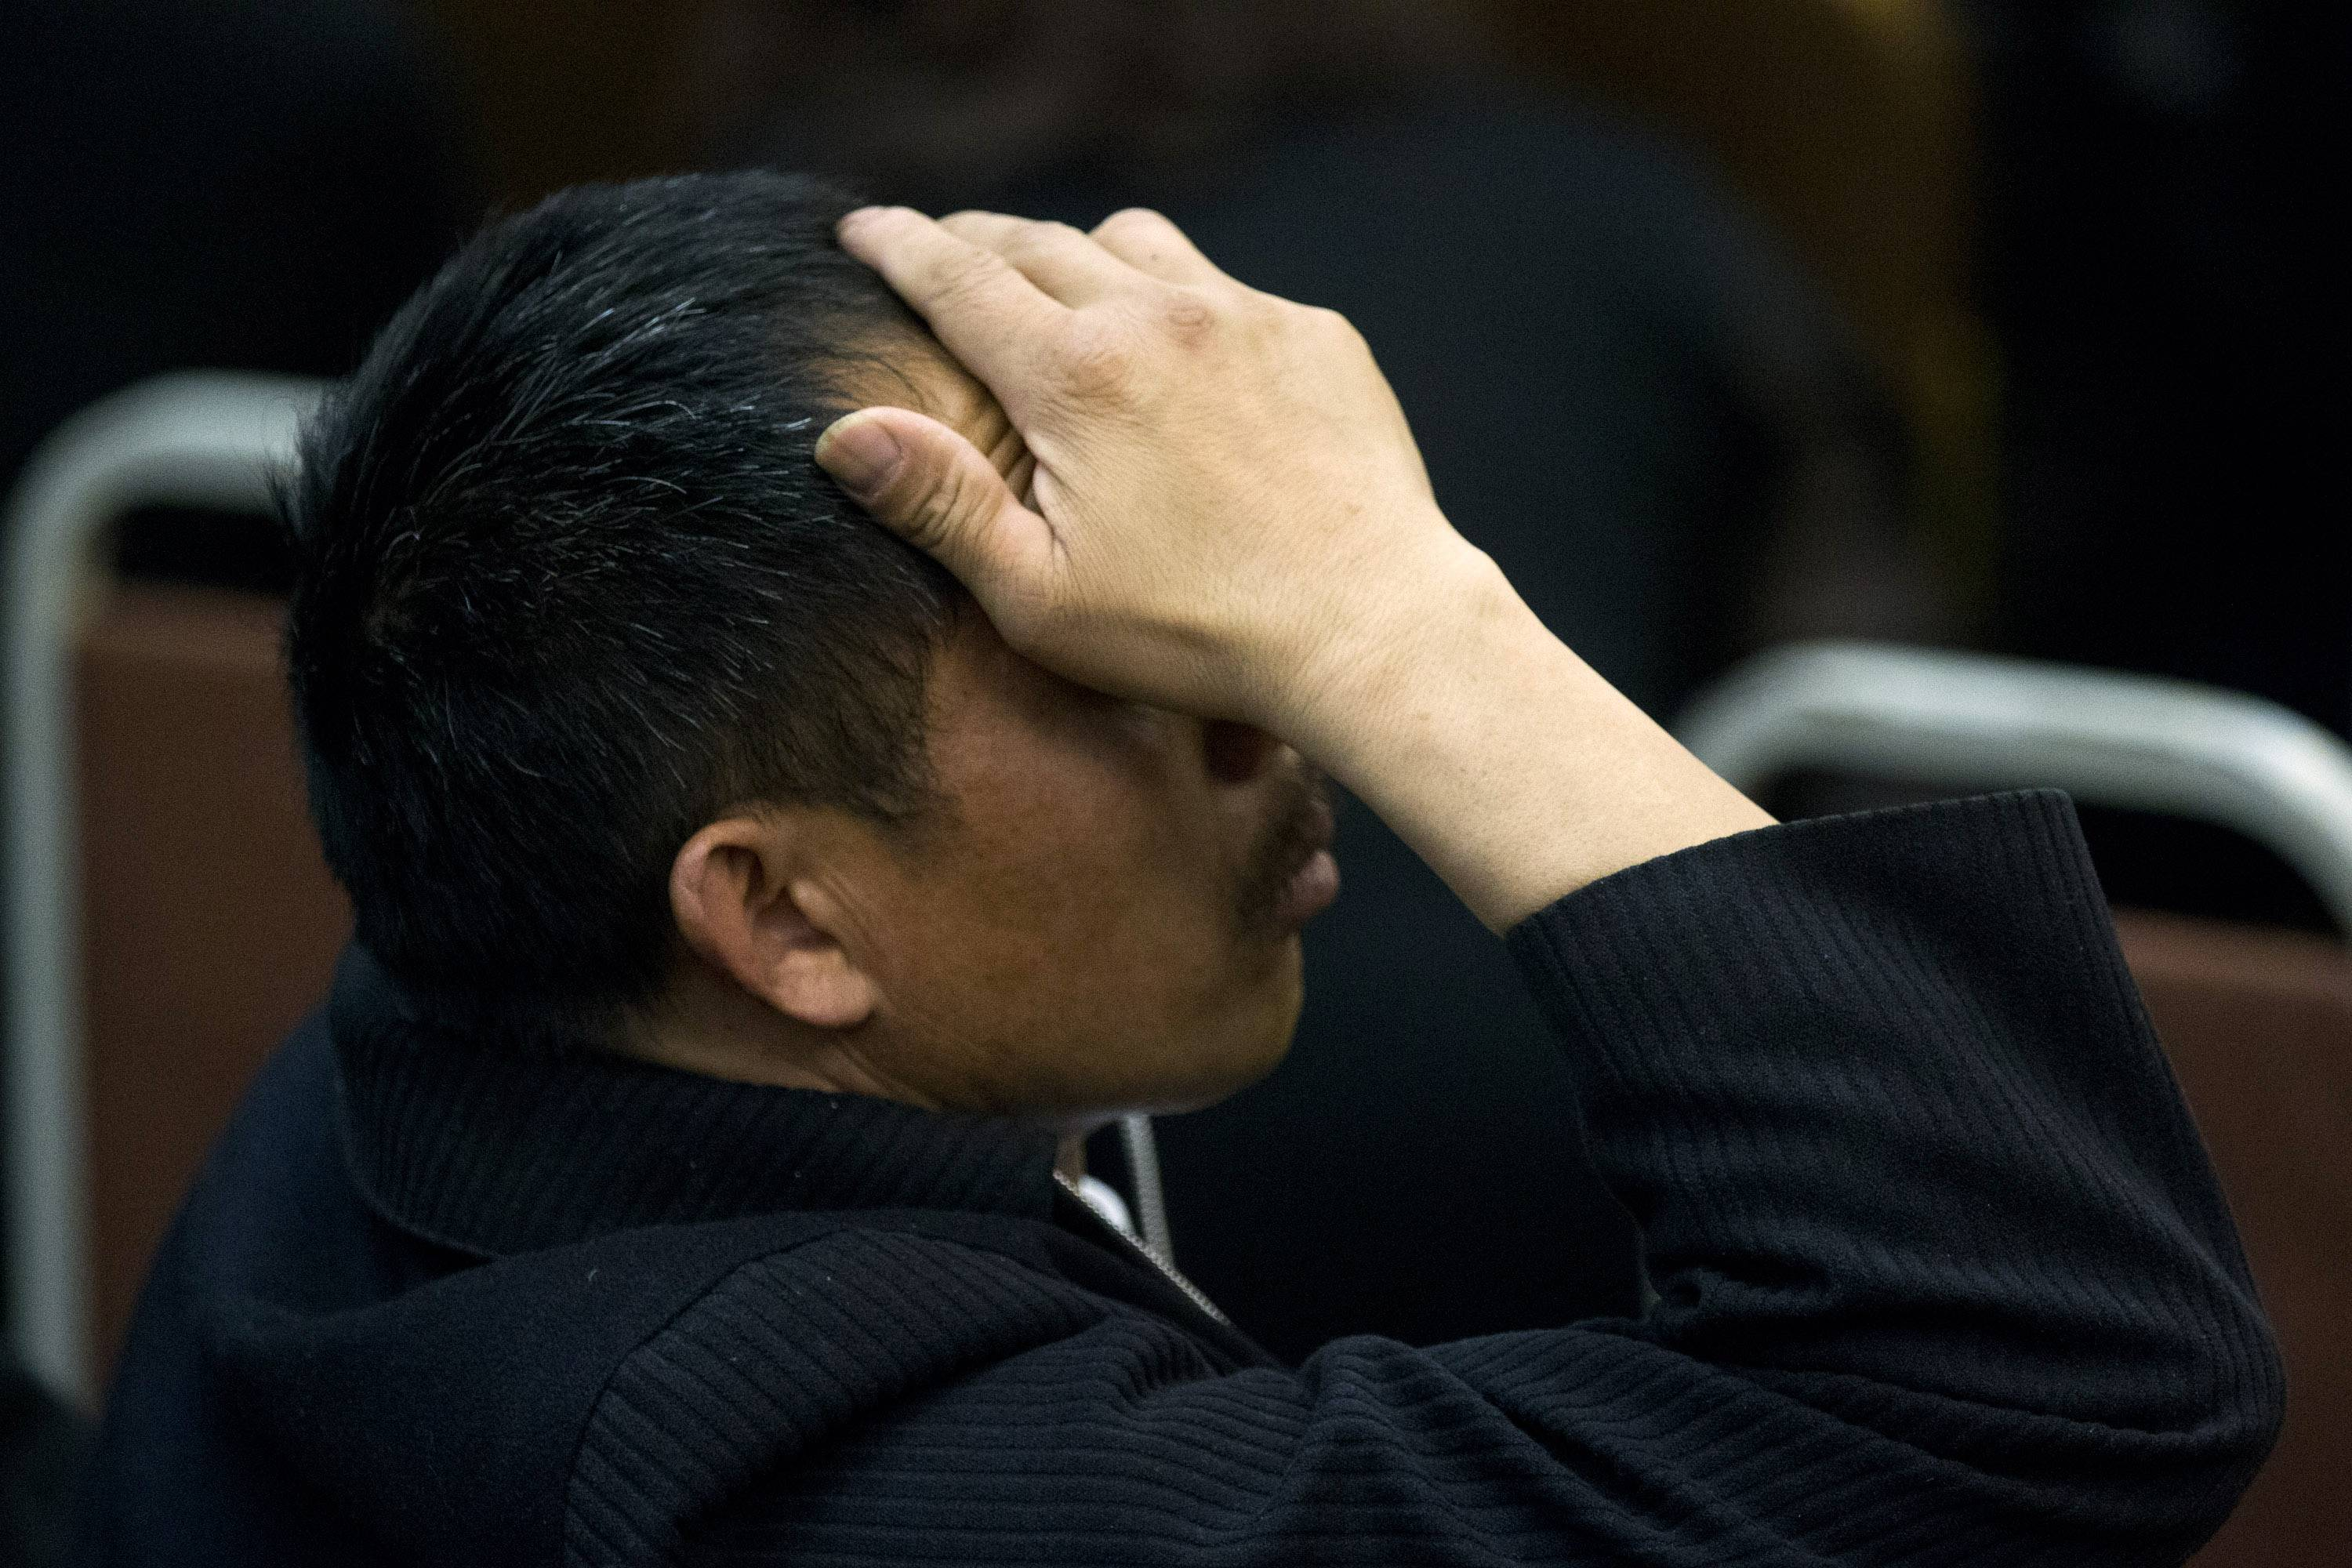 One of the relatives of Chinese passengers on board Malaysia Airlines Flight 370 rubs his head during a briefing meeting given by Malaysian official at a hotel in Beijing, China, Wednesday, March 26, 2014.